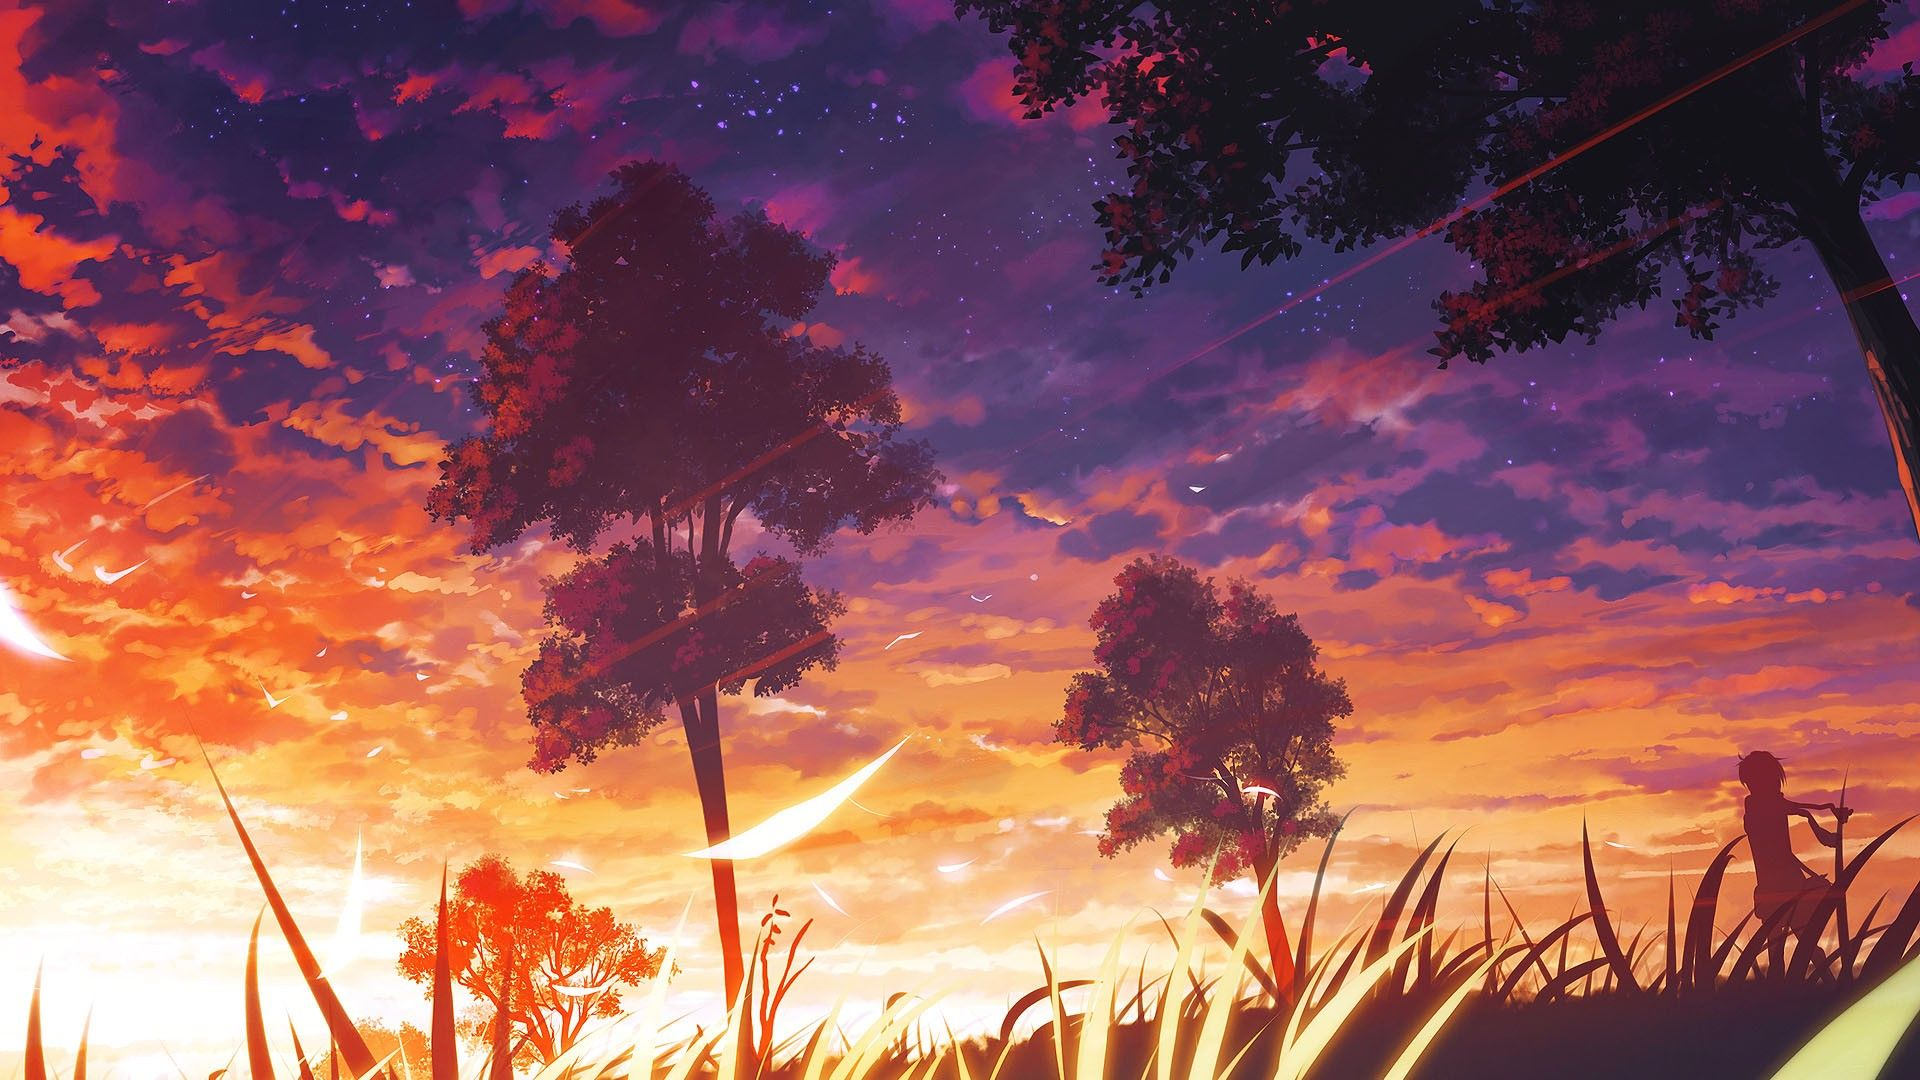 anime scenery wallpapers desktop background with high definition